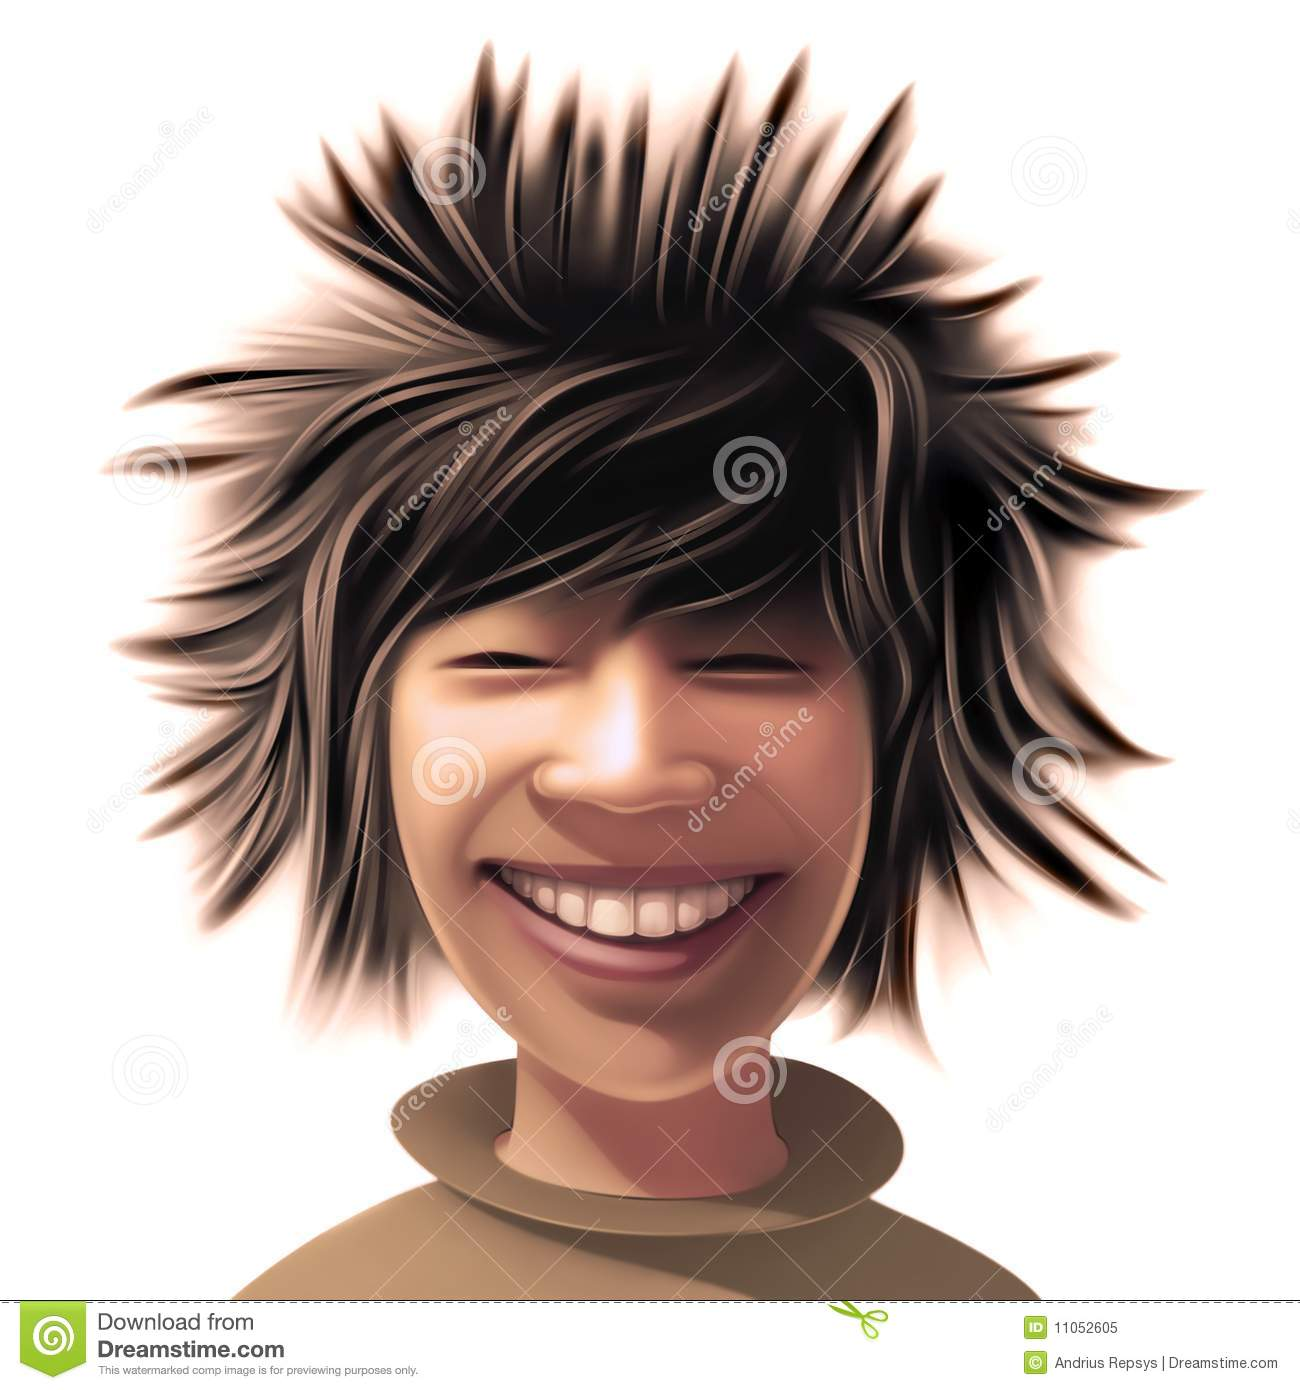 Boy With A Wild Hair Style Stock Illustration Illustration Of